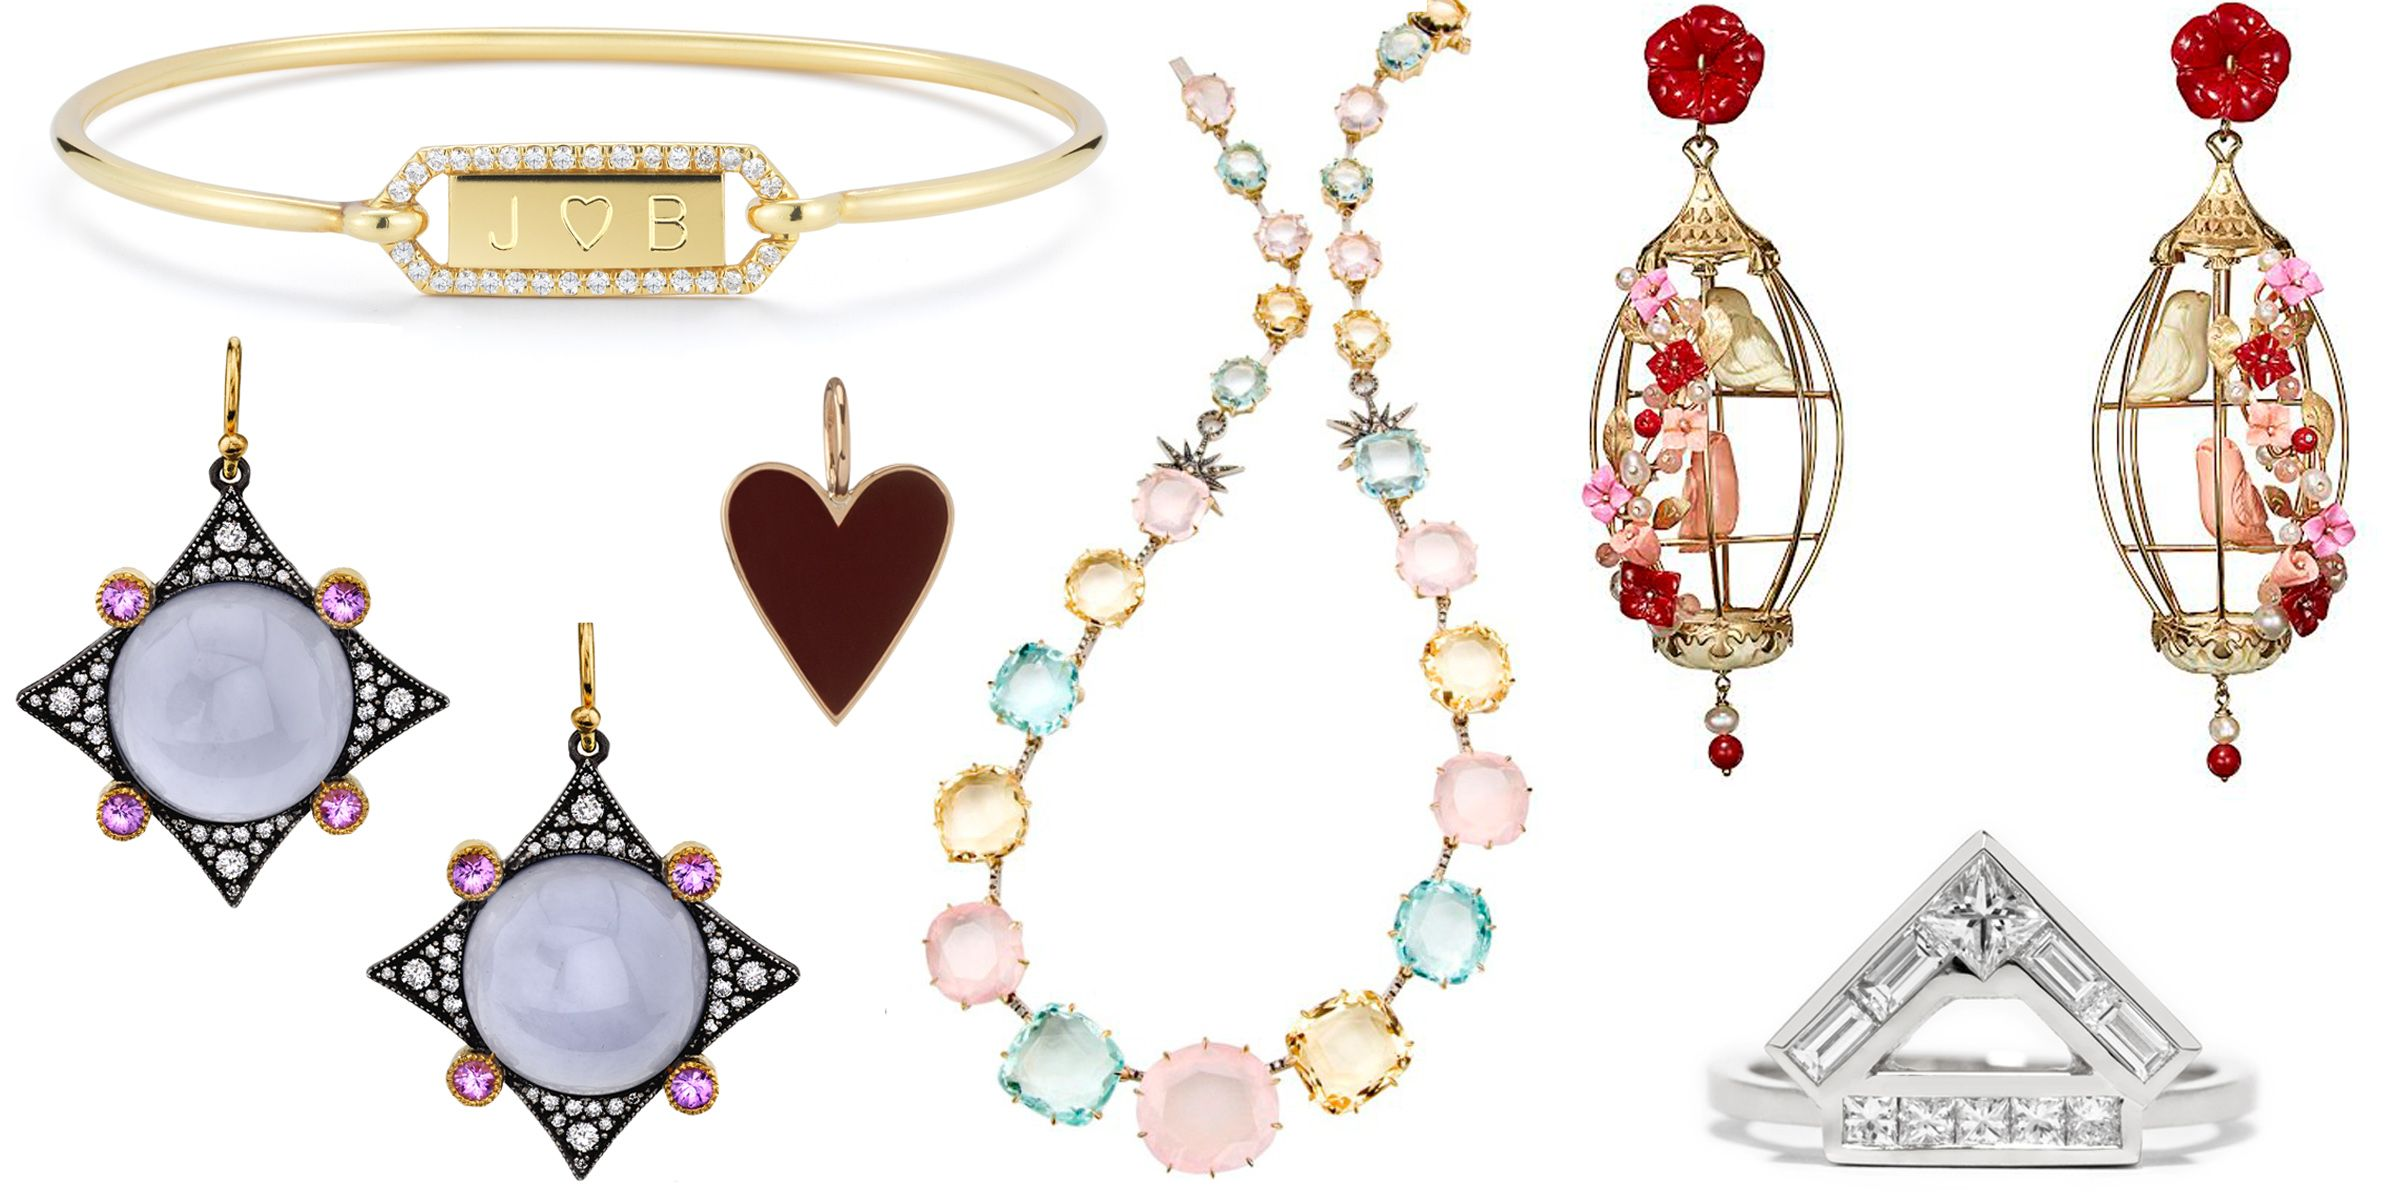 This is the Bridal Jewelry Worth Splurging On